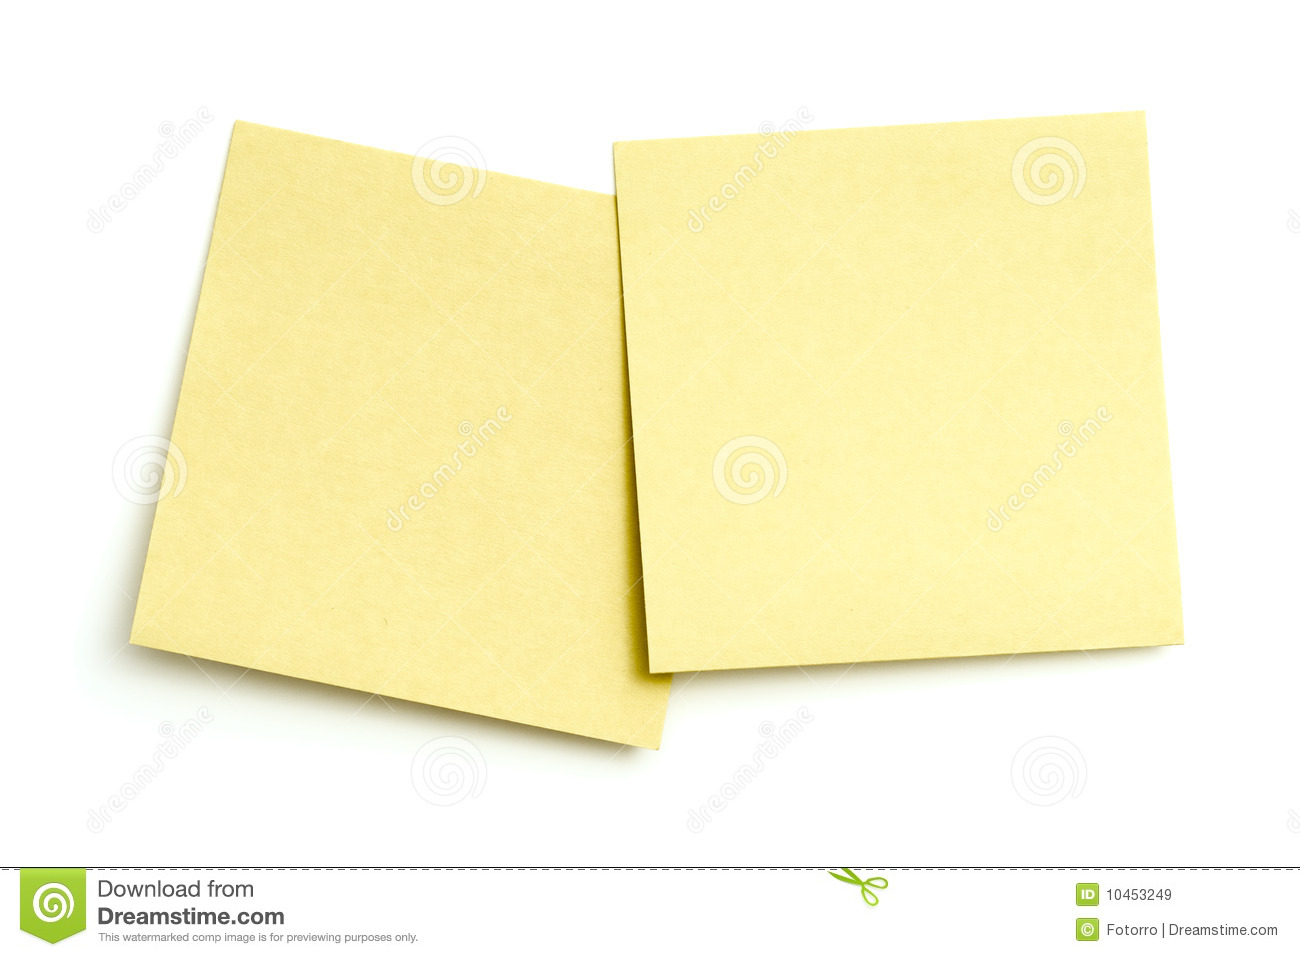 corkboard map with Royalty Free Stock Images Two Blank Sticky Notes White Image10453249 on 15 Fun Features For Family Rooms further 32643829251 besides Stock Photos Pinboard Notes Image8015513 furthermore Royalty Free Stock Photo Tower Money Packs Image23120215 besides Thumbtack.